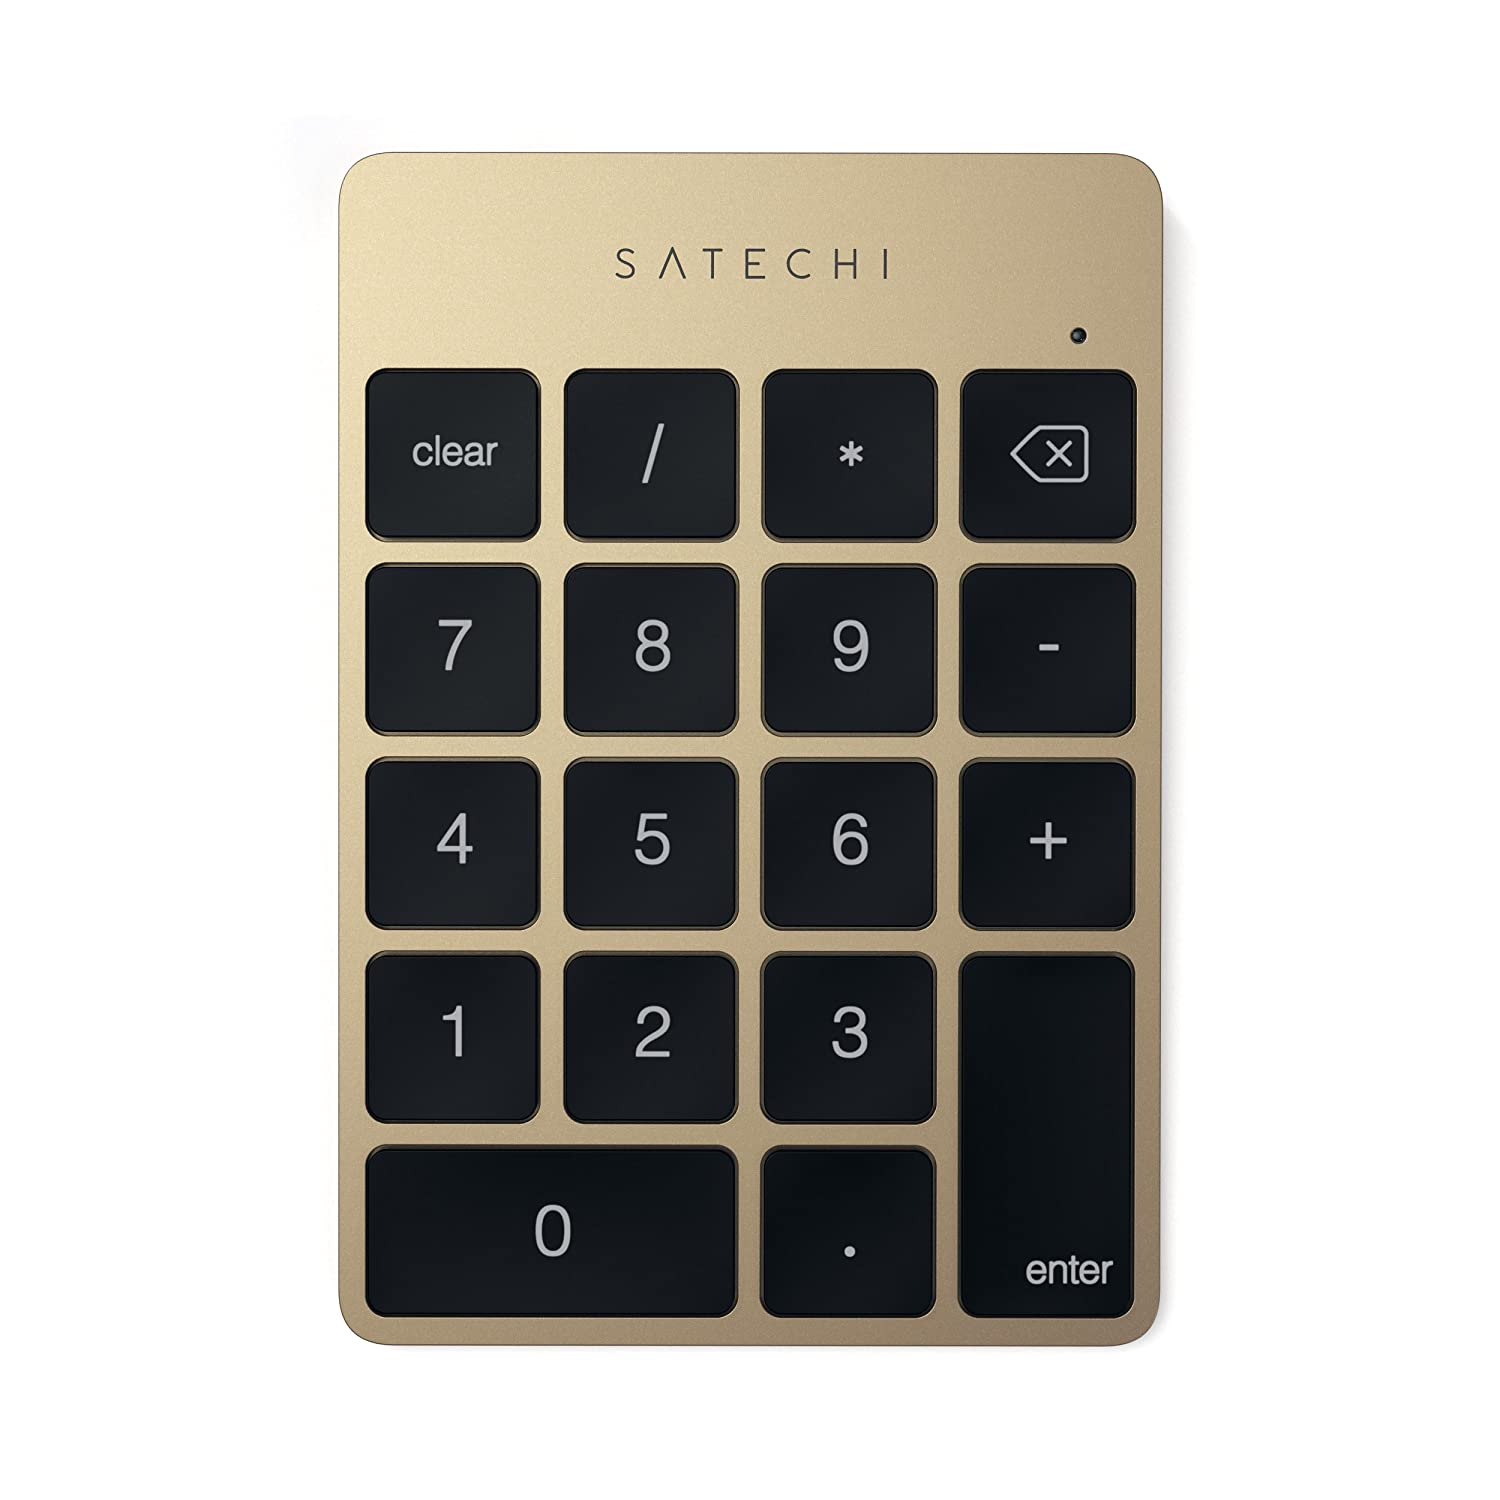 Satechi Slim Aluminum Bluetooth Wireless 18-Key Keypad Keyboard Extension for Excel Numbers Data Entry - Compatible with 2017 iMac, iMac Pro, MacBook Pro, MacBook, iPad, iPhone, Dell, Lenovo and more (Silver) ST-SALKPS